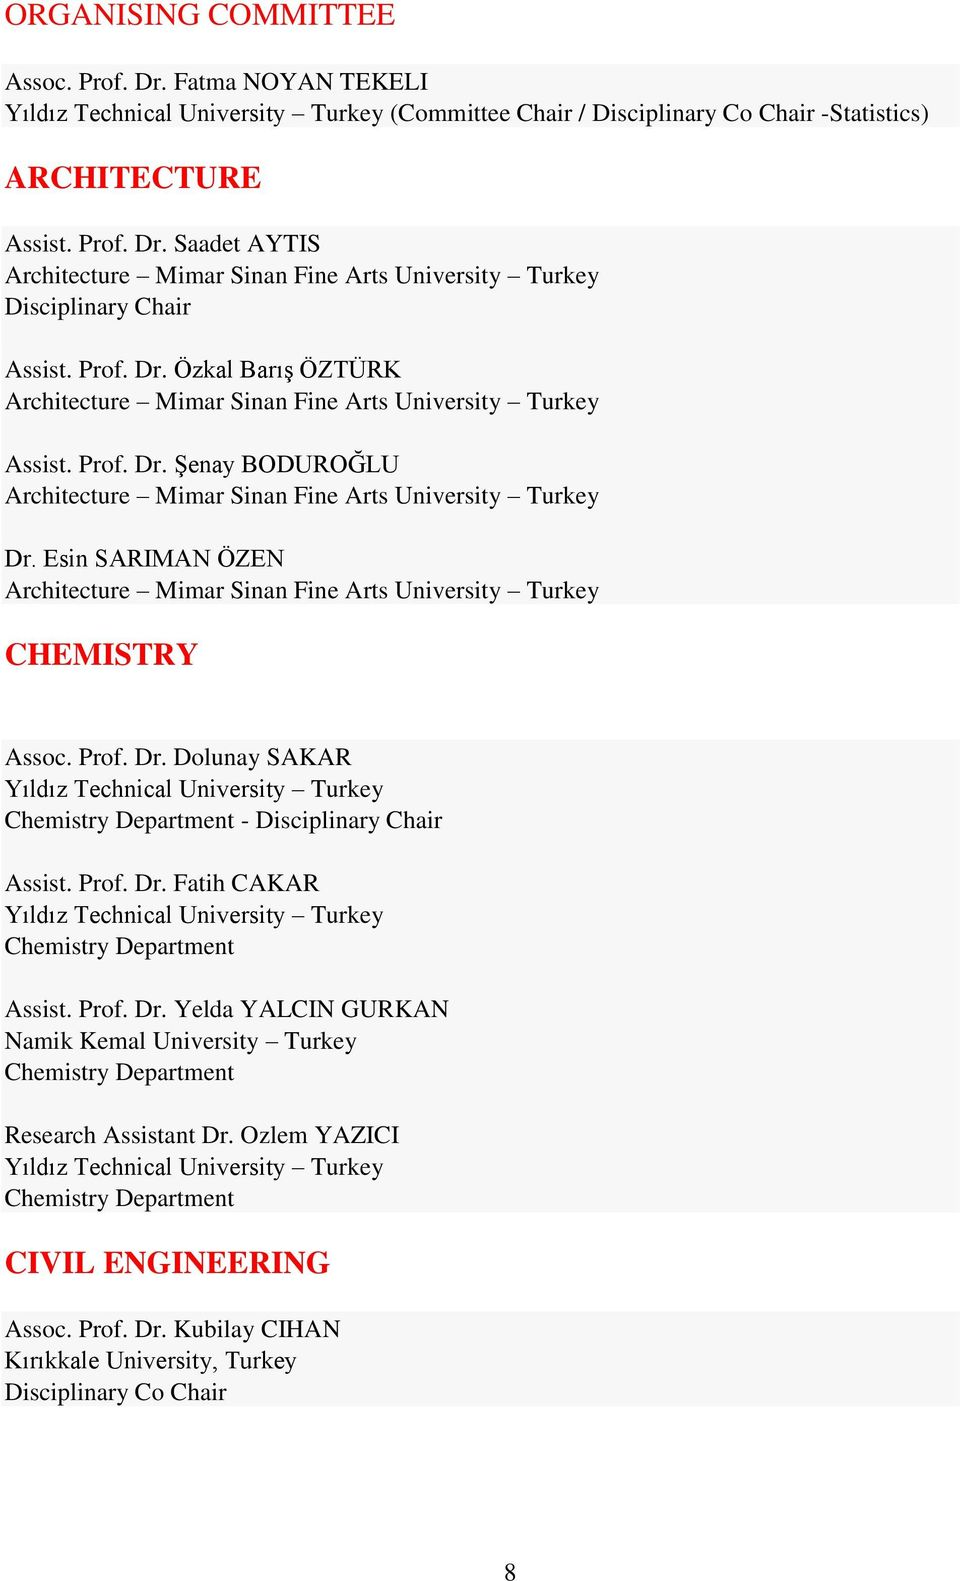 Esin SARIMAN ÖZEN Architecture Mimar Sinan Fine Arts University Turkey CHEMISTRY Assoc. Prof. Dr. Dolunay SAKAR Yıldız Technical University Turkey Chemistry Department - Disciplinary Chair Assist.